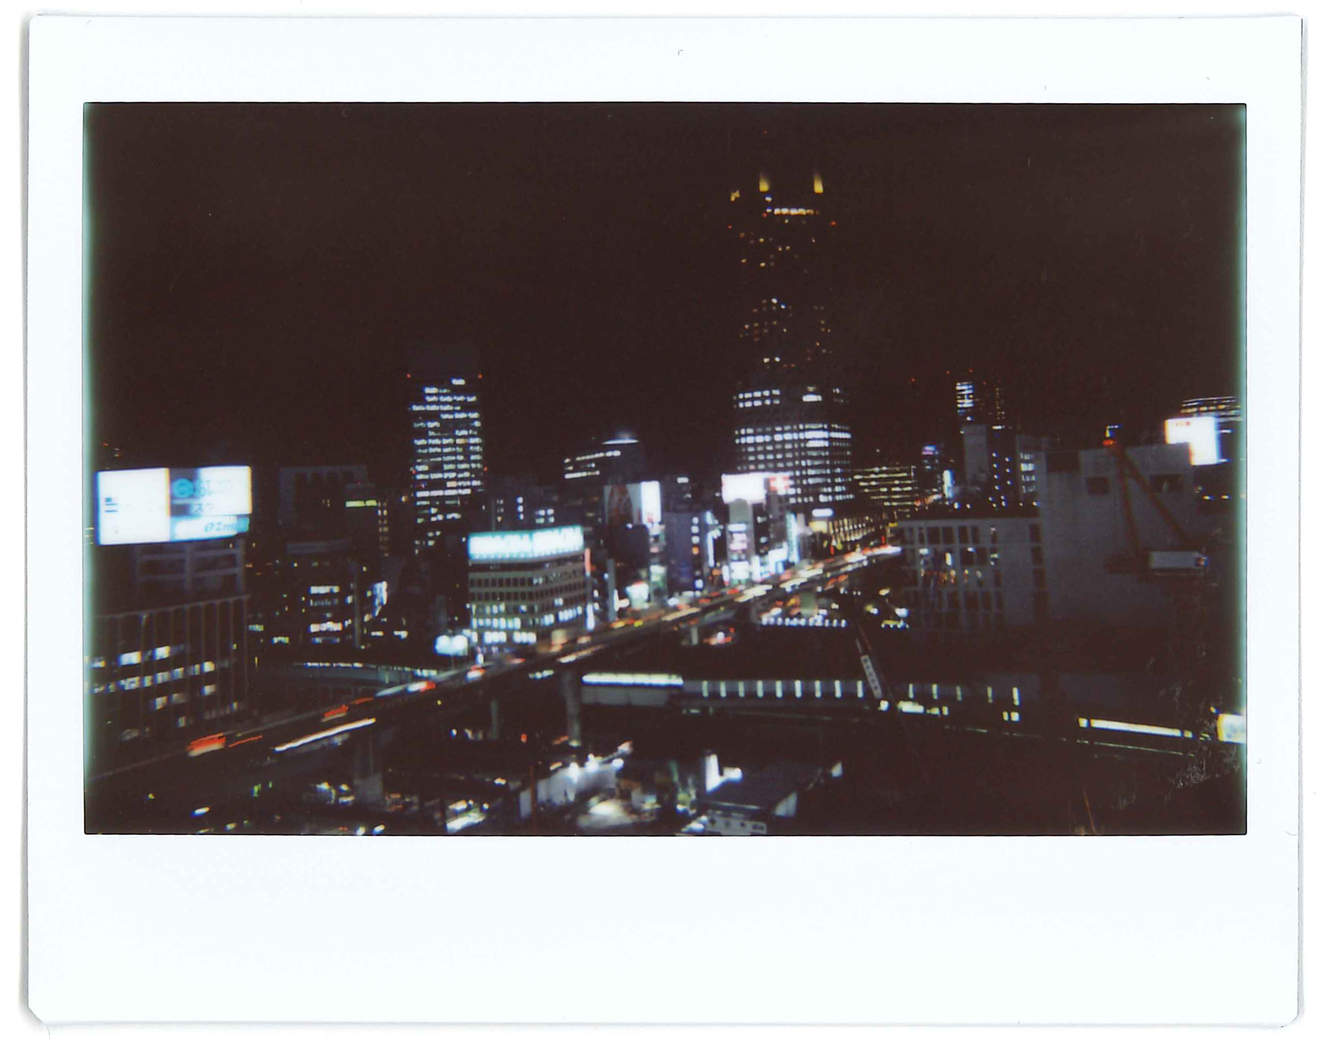 """Instant photo for Day 65 of """"A Year in an Instant"""" by Nuno Coelho Santos"""